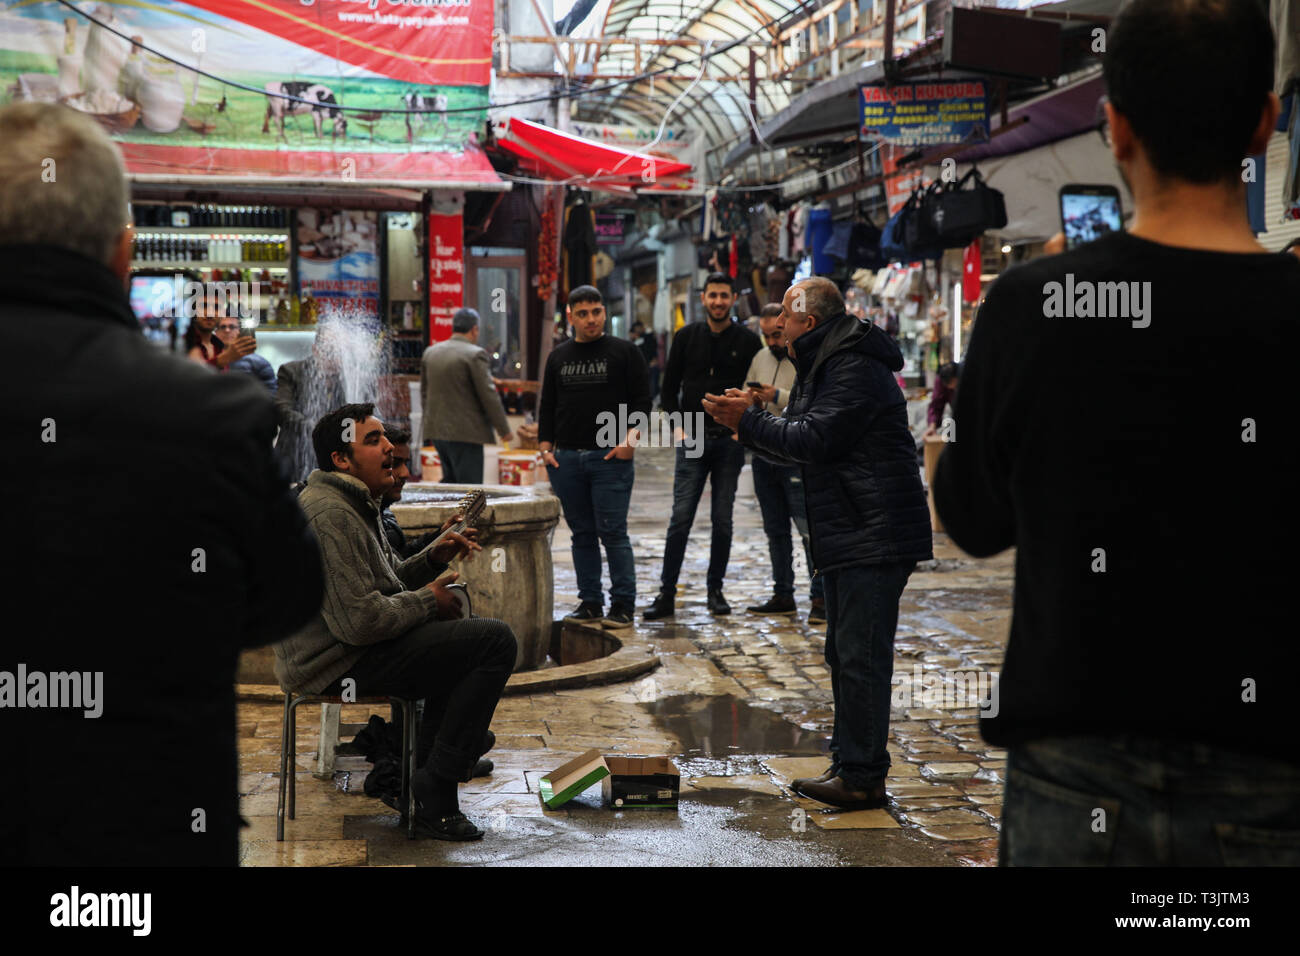 March 15, 2019 - Antakya is a city in southern Turkey built on plains across the Orantes river and close to the Mediterranean coast. It is a tourist destination in addition to being a lively shopping and business centre. In the old covered Bazaar of Uzun Carsi traditional crafts are still practiced and traditional handicrafts are on sale. Despite many ancient buildings having been destroyed during a major earthquake, it is a picturesque place with unique buildings such as old houses, mosques, churches, museums, and with many narrow alleys and cobbled paths. Antakya was a large city during the - Stock Image